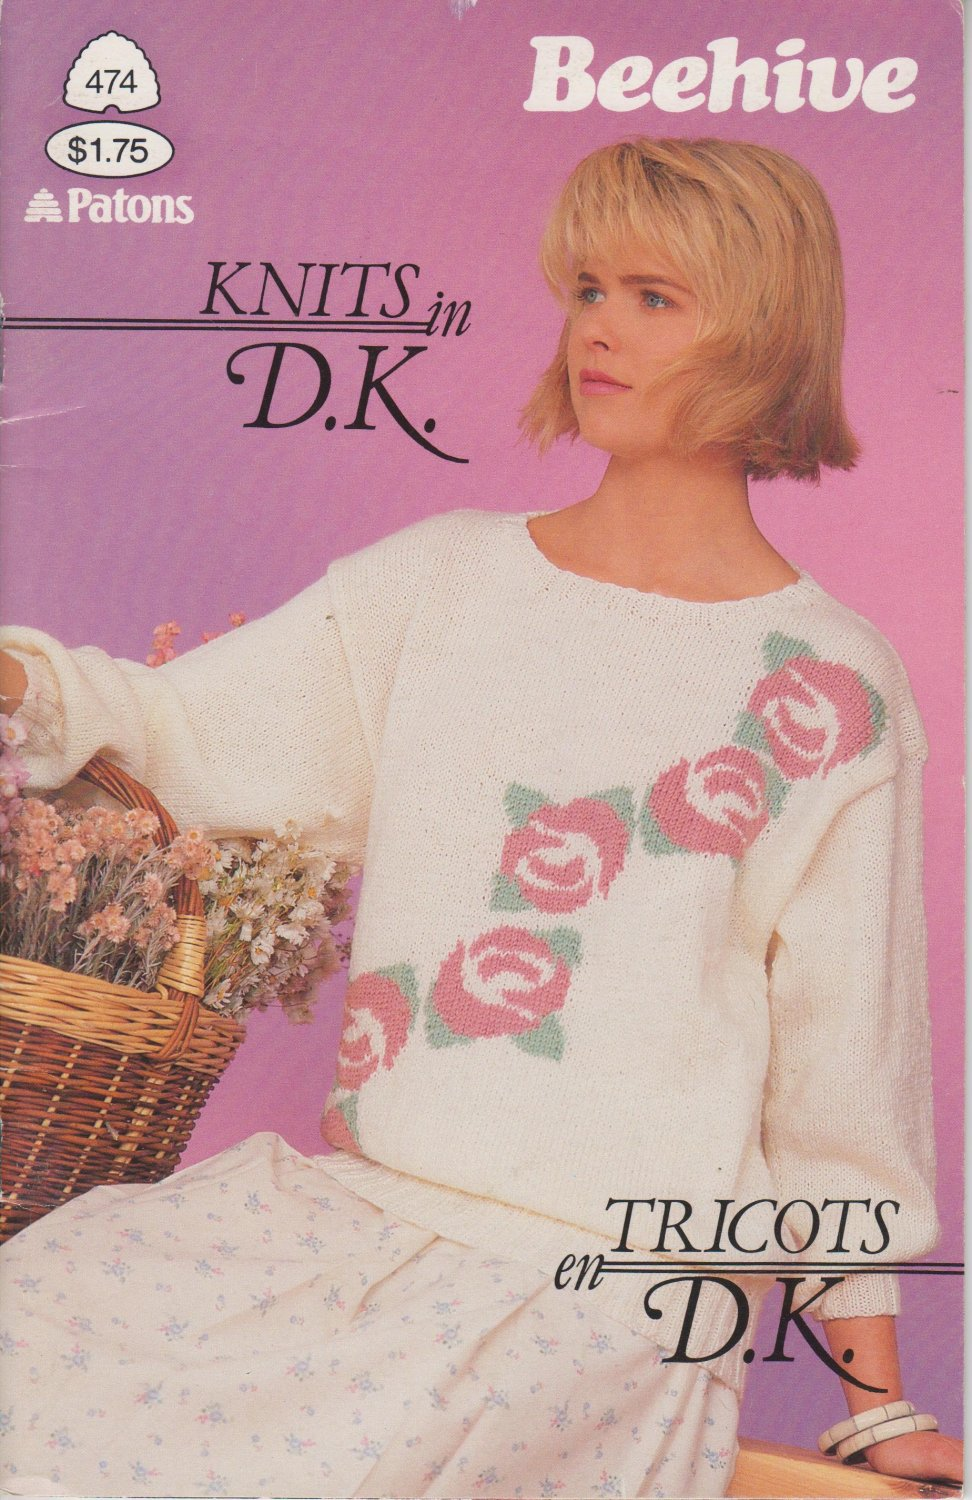 Patons Beehive 1986 Knitting Pattern Book #474 Knits in D.K.